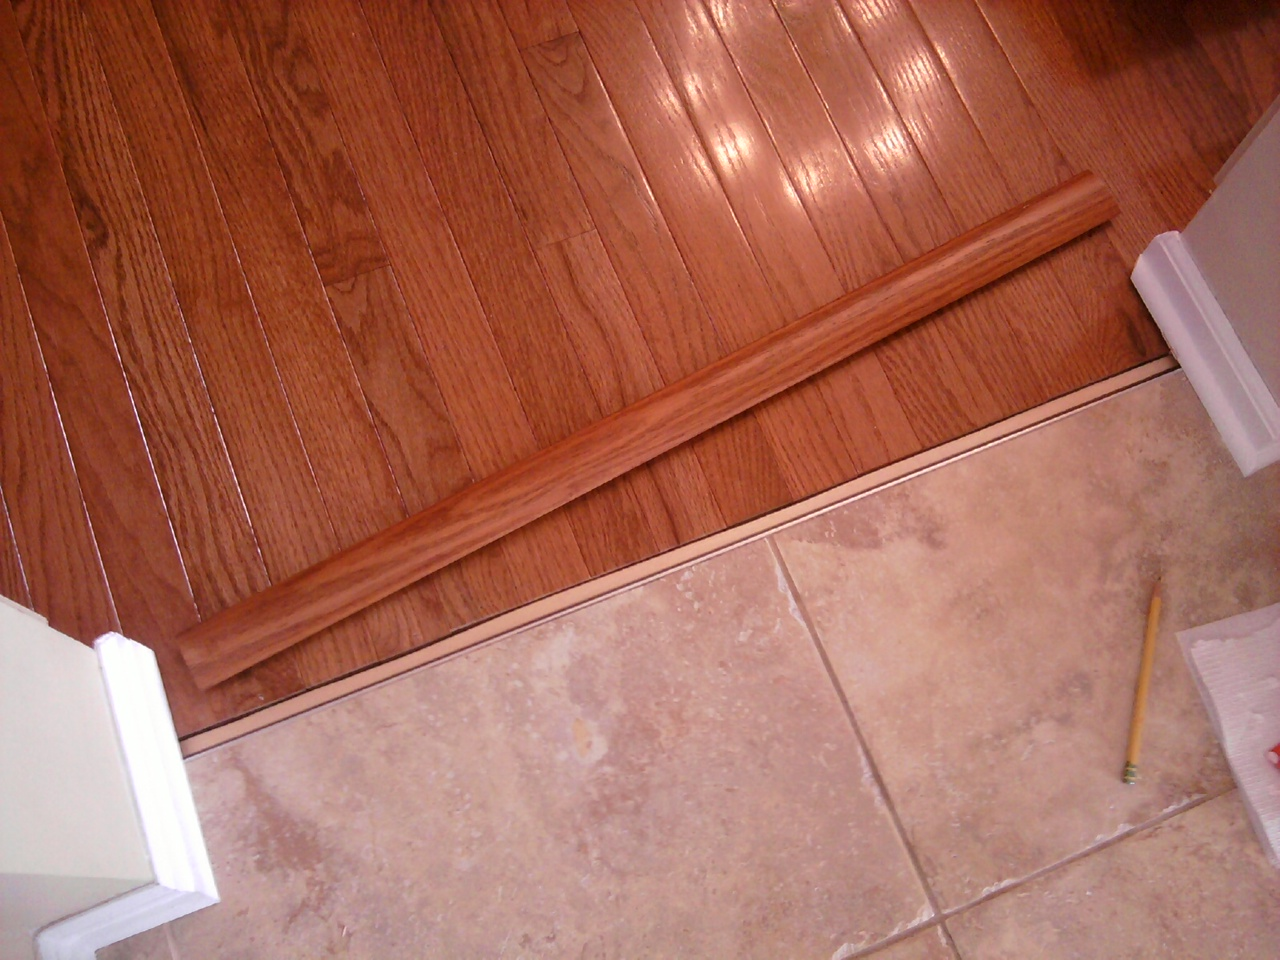 Hardwood to tile transition